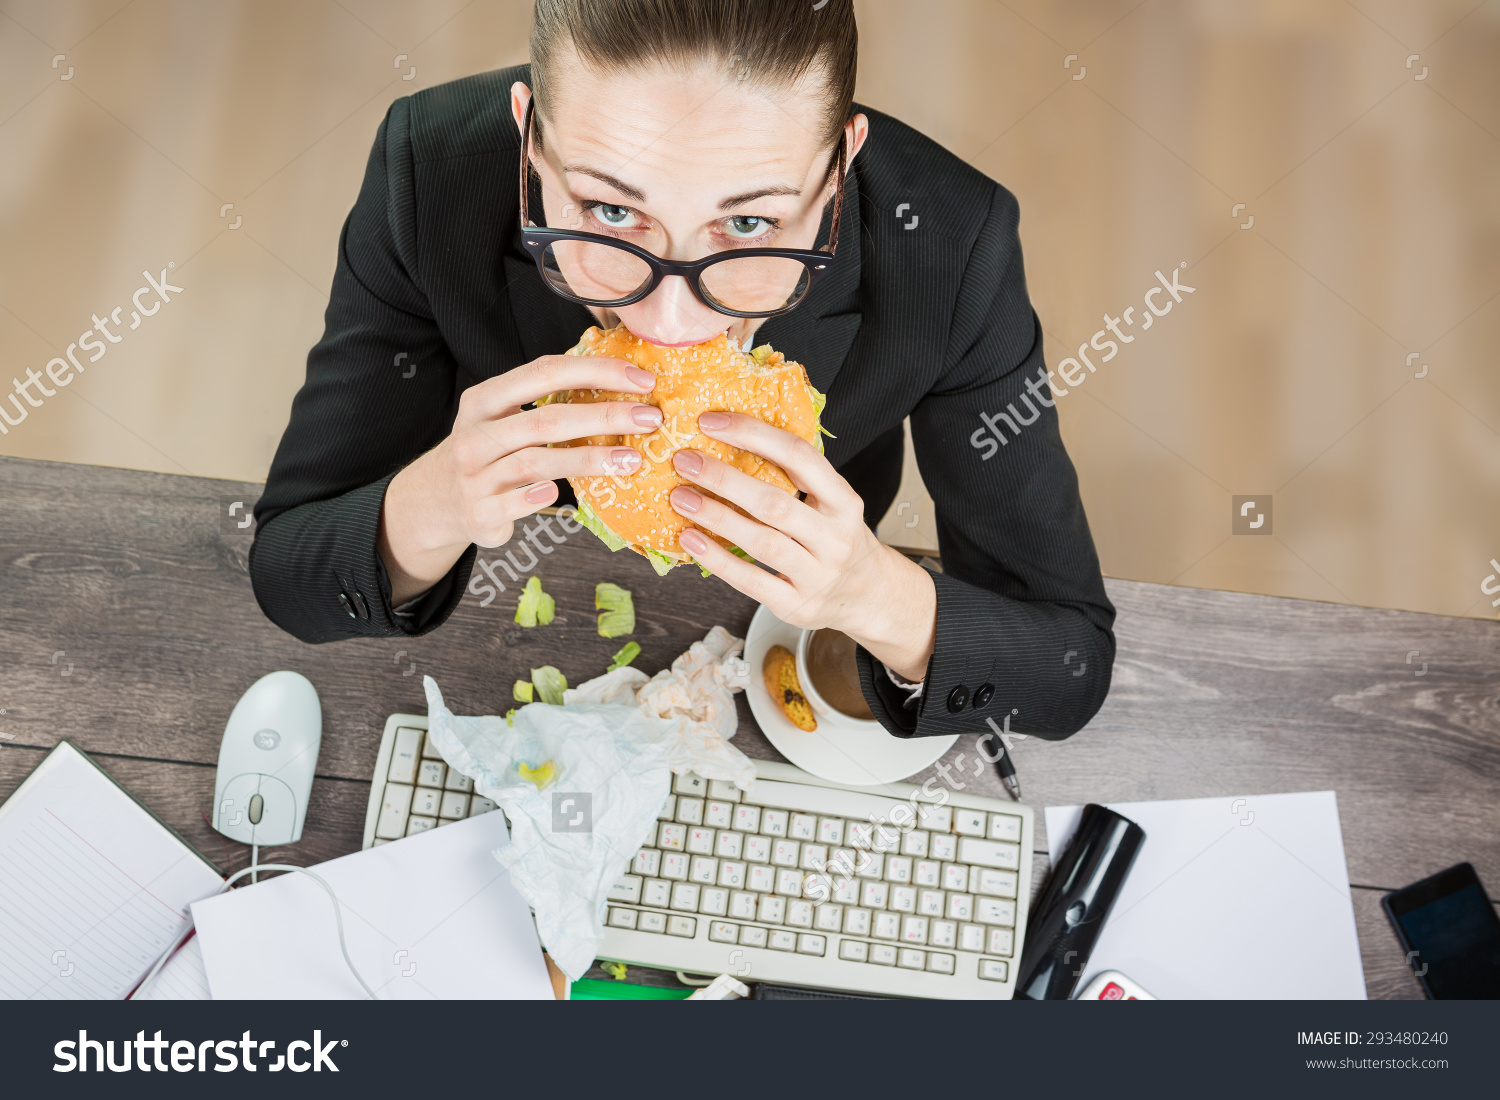 stock-photo-overhead-view-of-businesswoman-eating-at-computer-in-office-at-work-place-the-modern-pace-of-life-293480240